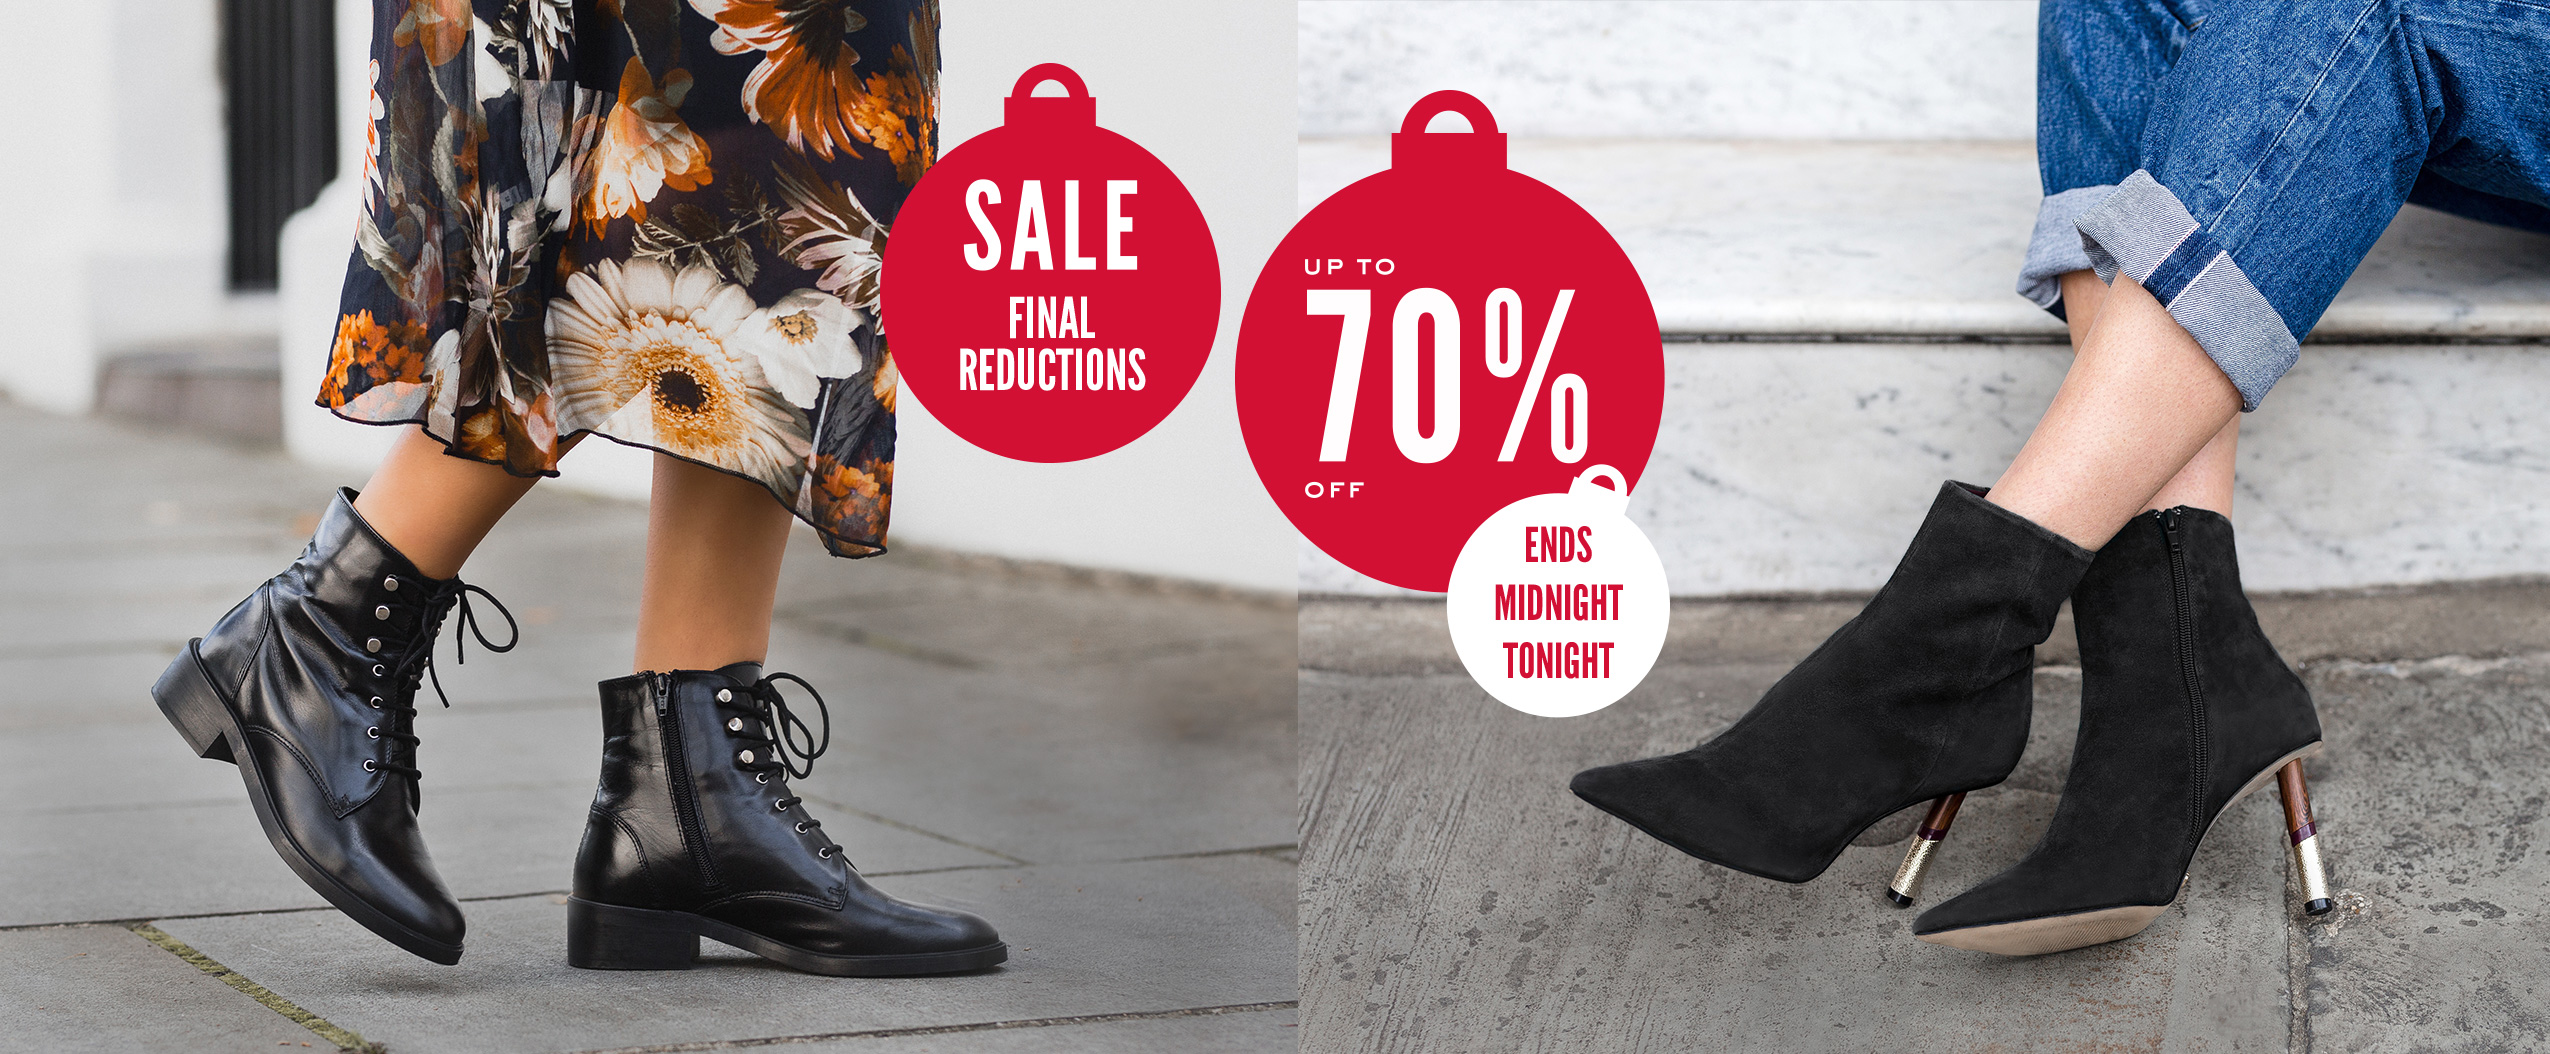 Sale - Final Reductions - Ends Midnight Tonight